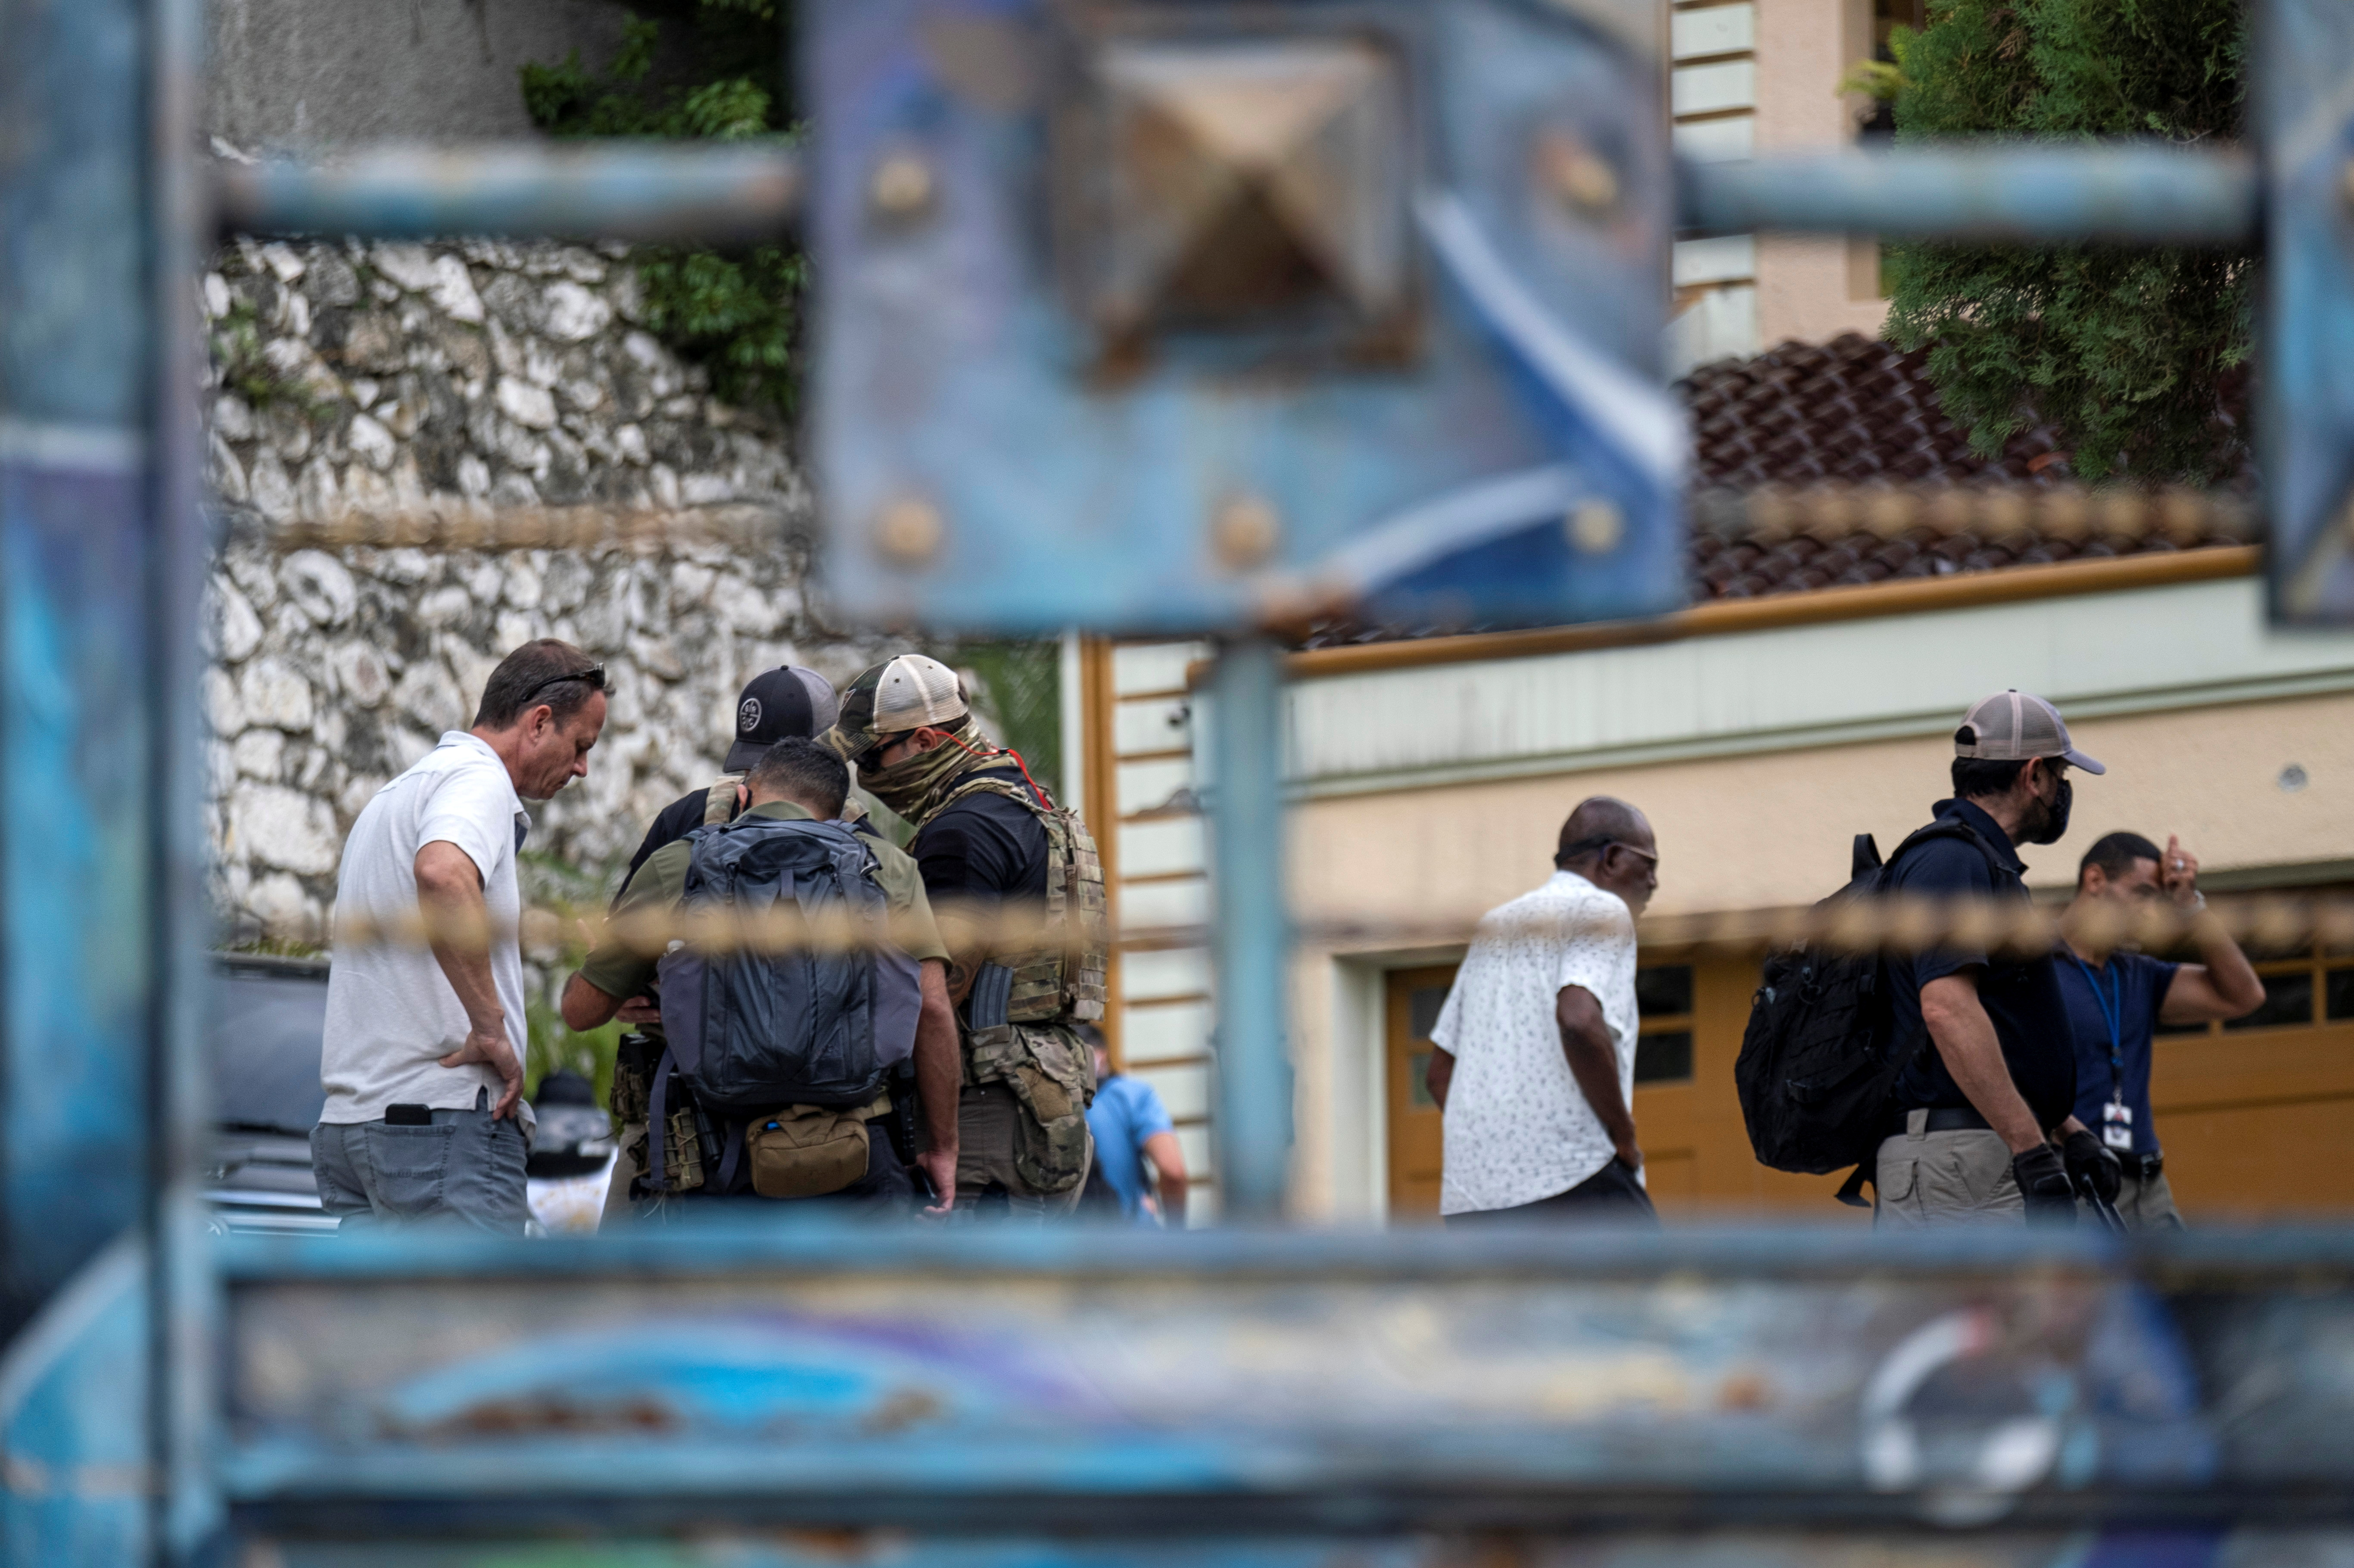 FBI agents assisting in the investigation of the assassination of Haiti's President Jovenel Moise inspect his residence in Port-au-Prince, Haiti, July 15, 2021. REUTERS/Ricardo Arduengo